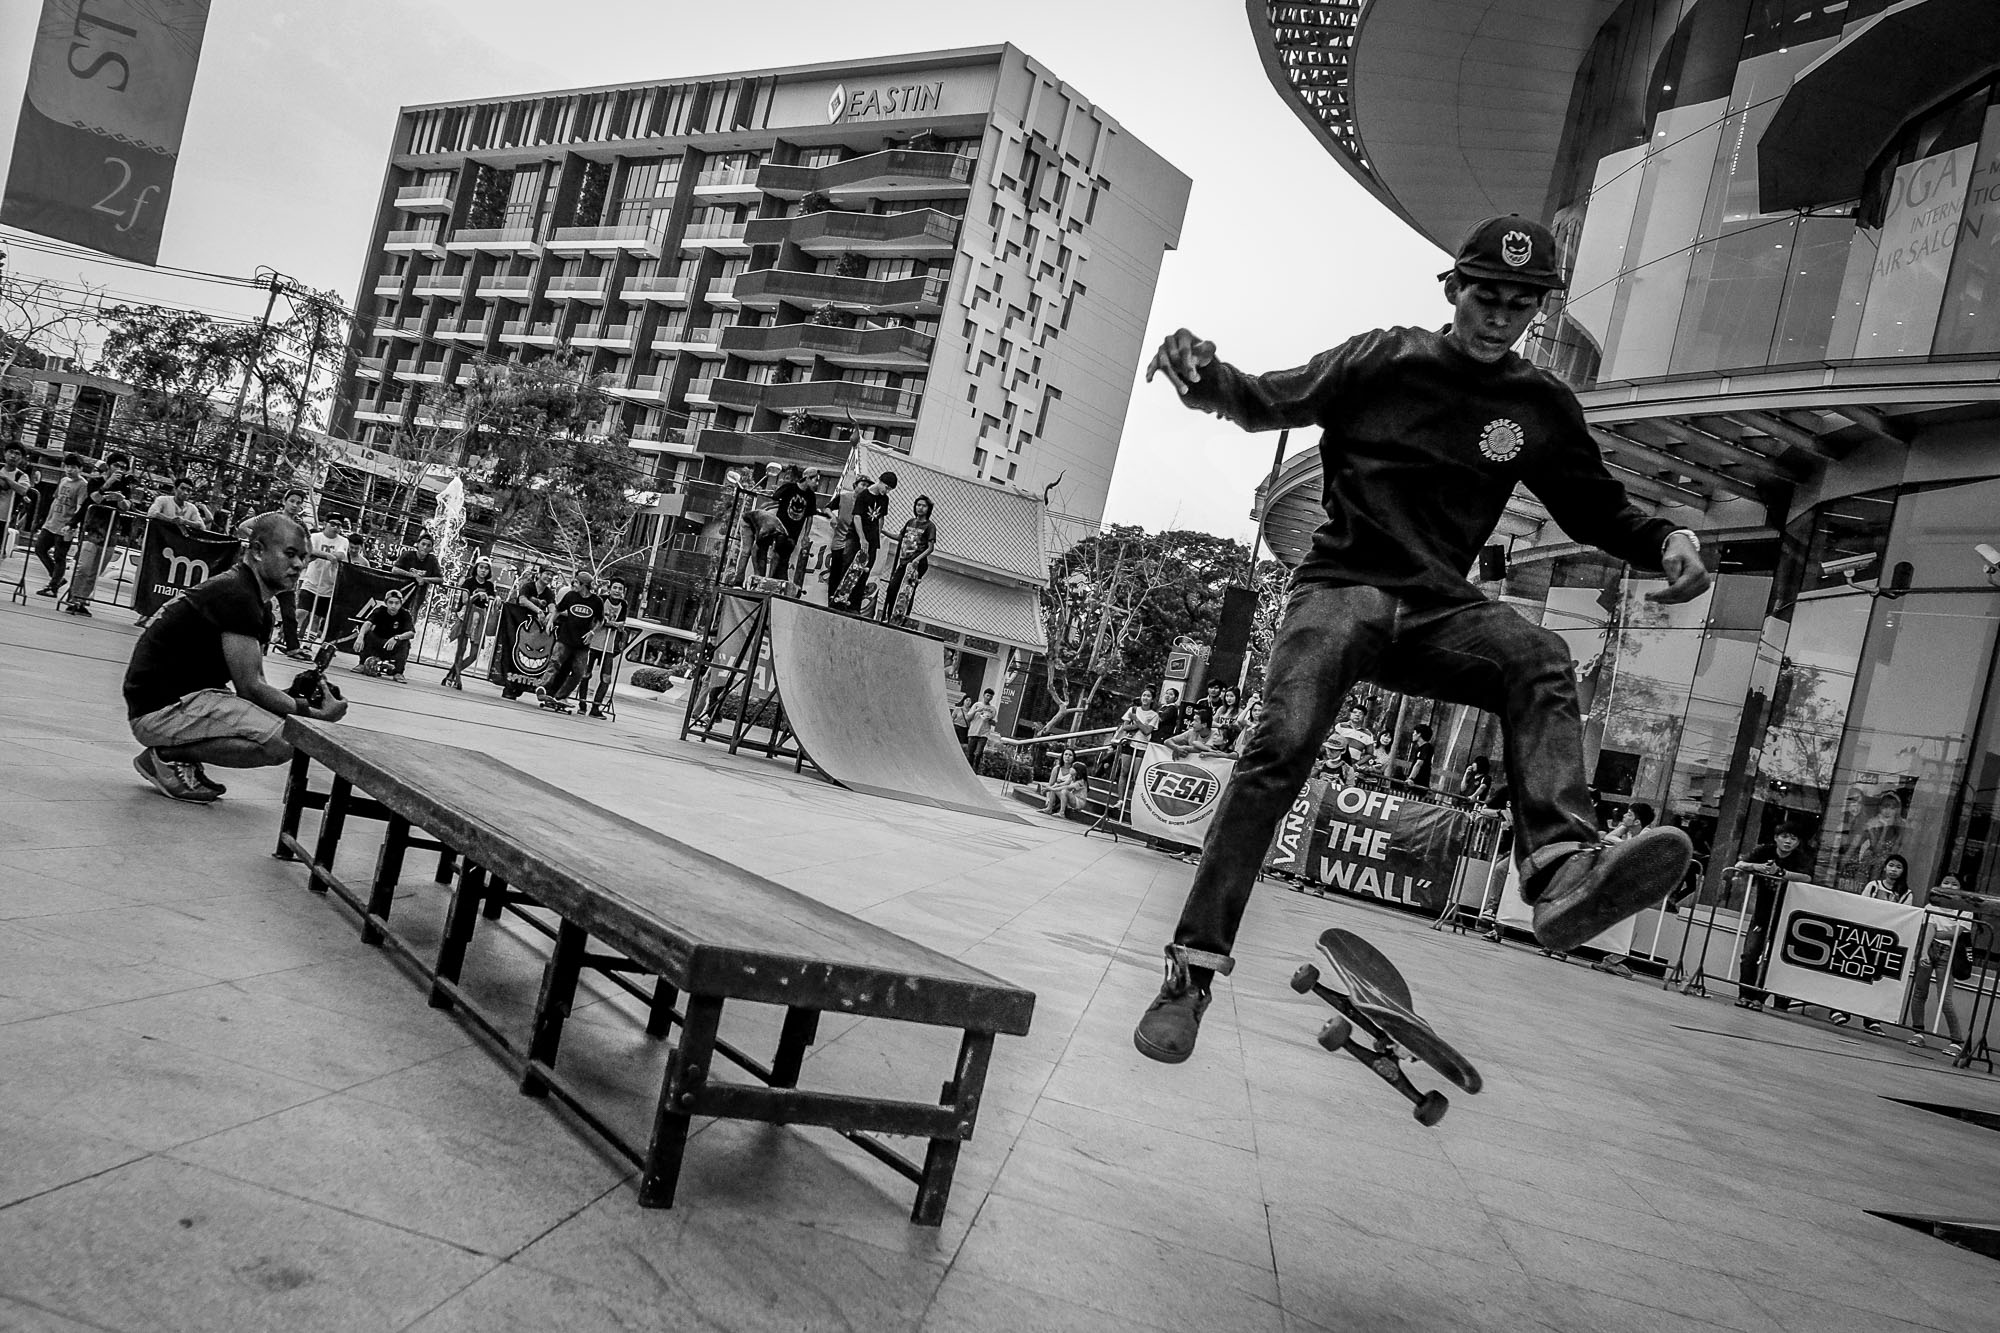 Dude doing a kickflip from a rail